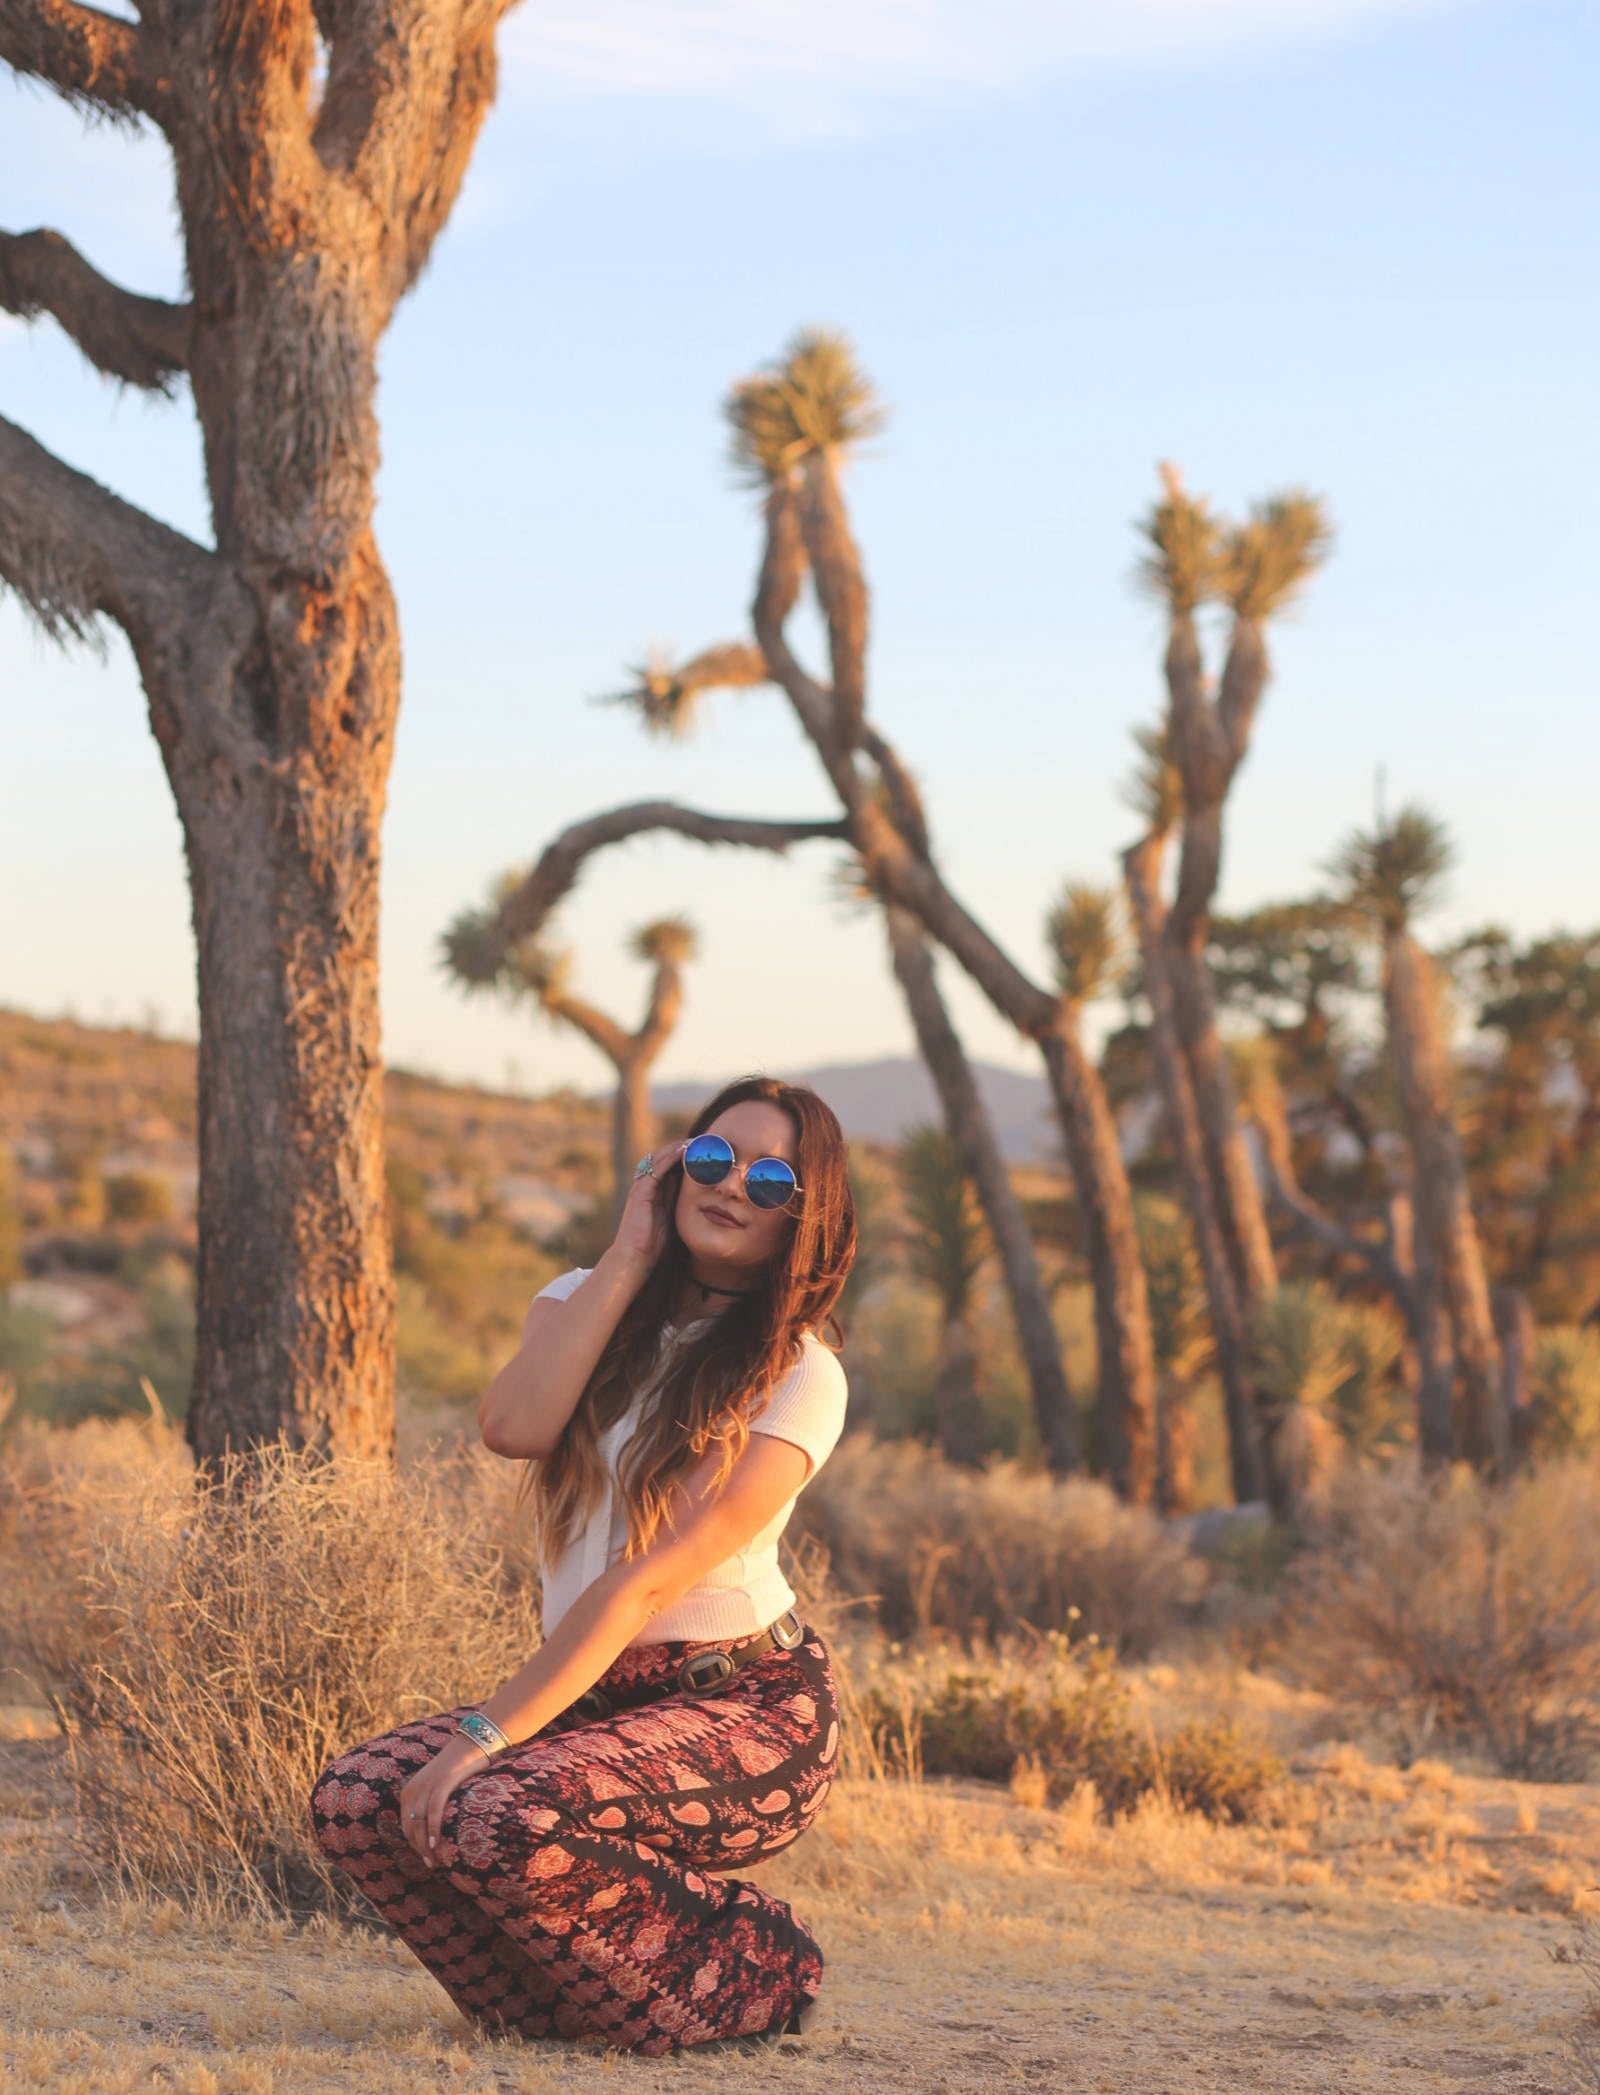 joshua tree national park inspired outfit